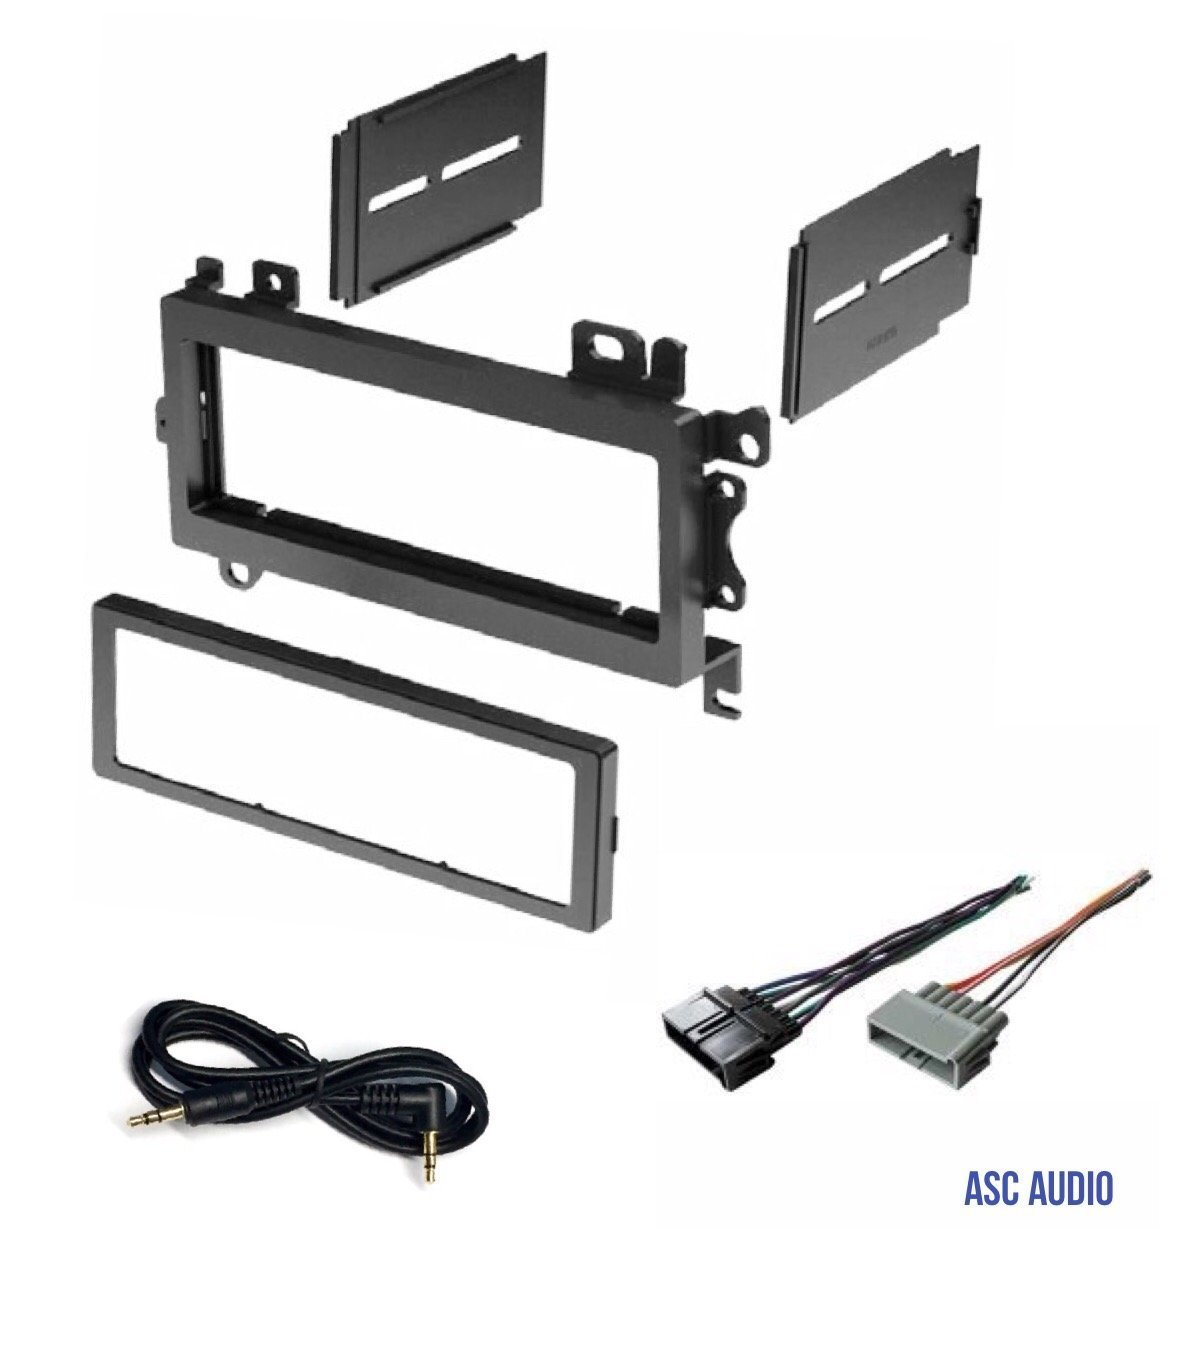 Asc Car Stereo Dash Install Mount Kit And Wire Harness Dodge Ram Pickup 06 2006 Radio Wiring Combo To A Single Din Aftermarket For Some 1984 2002 Chrysler Jeep